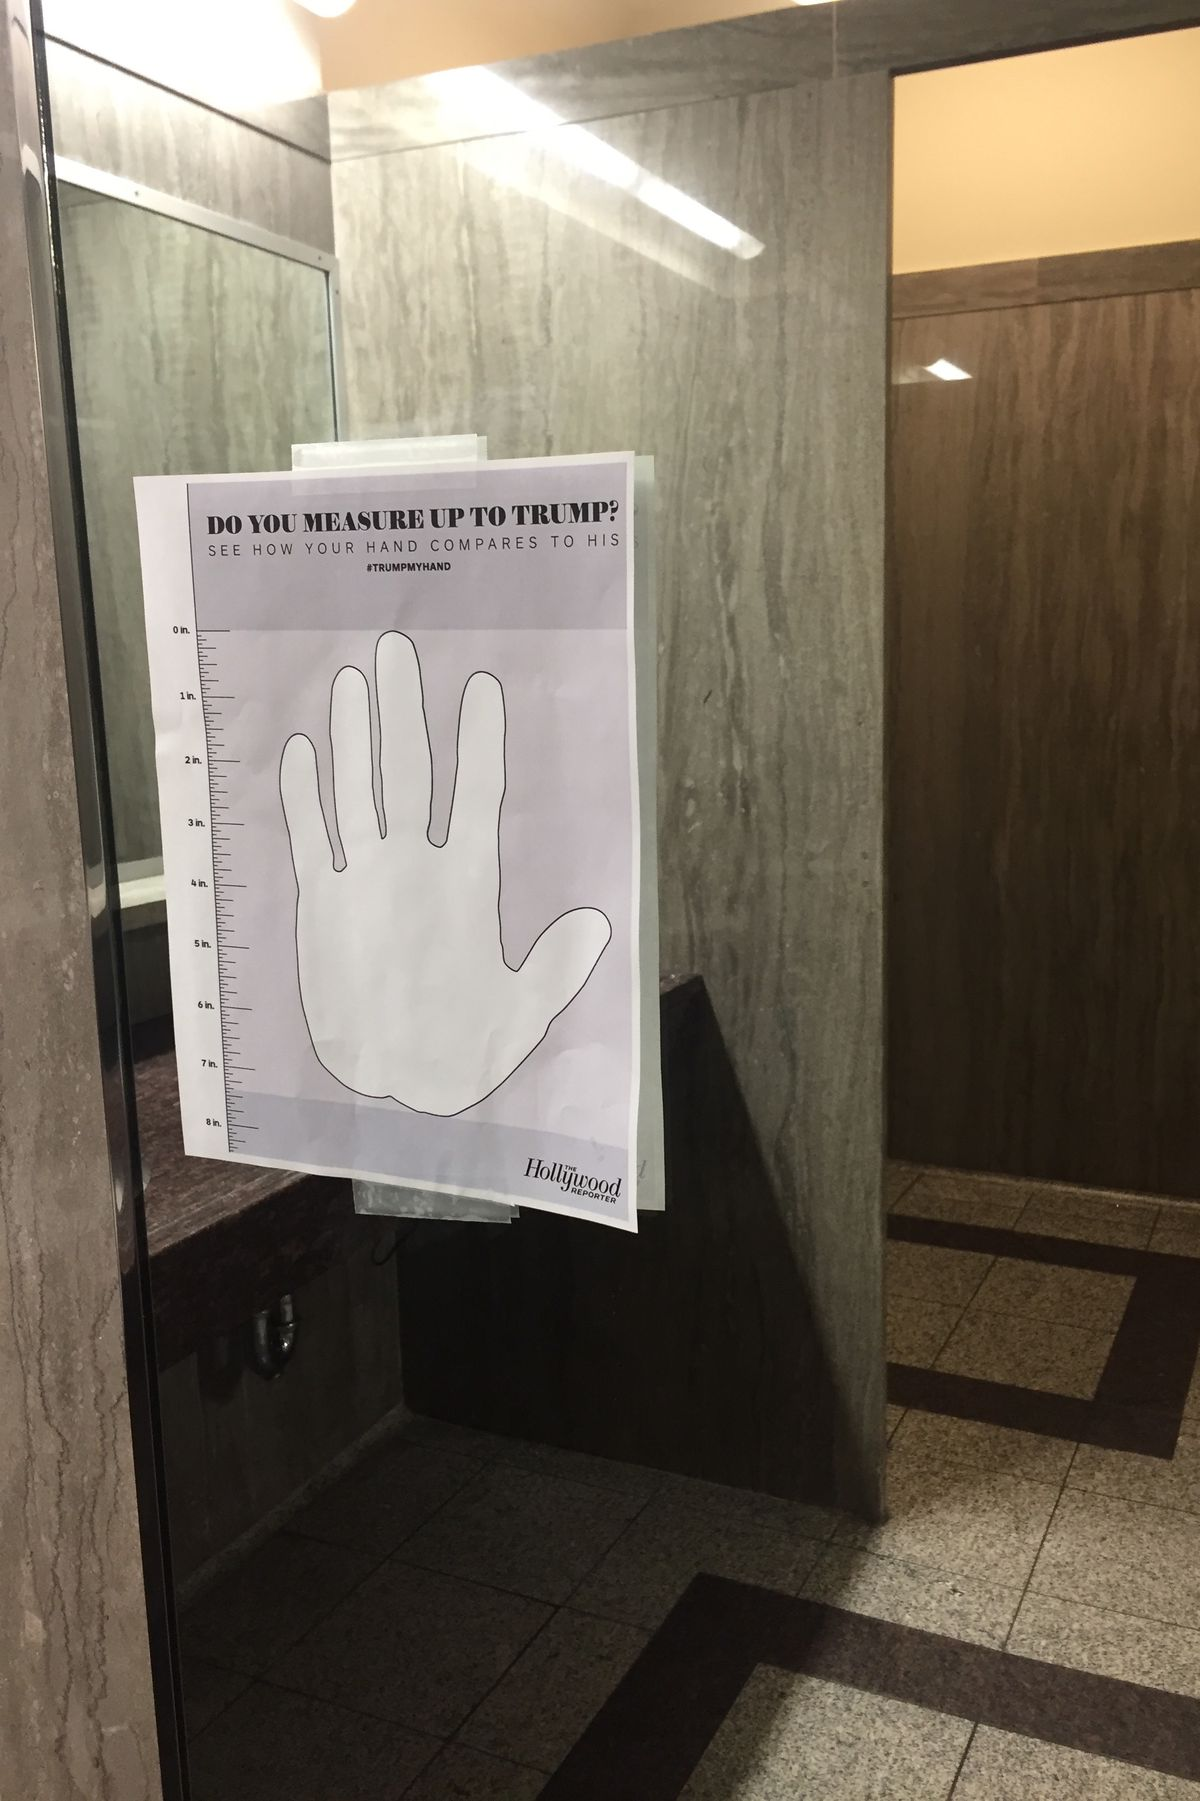 The Hollywood Reporter's Donald Trump hand size comparison sheet